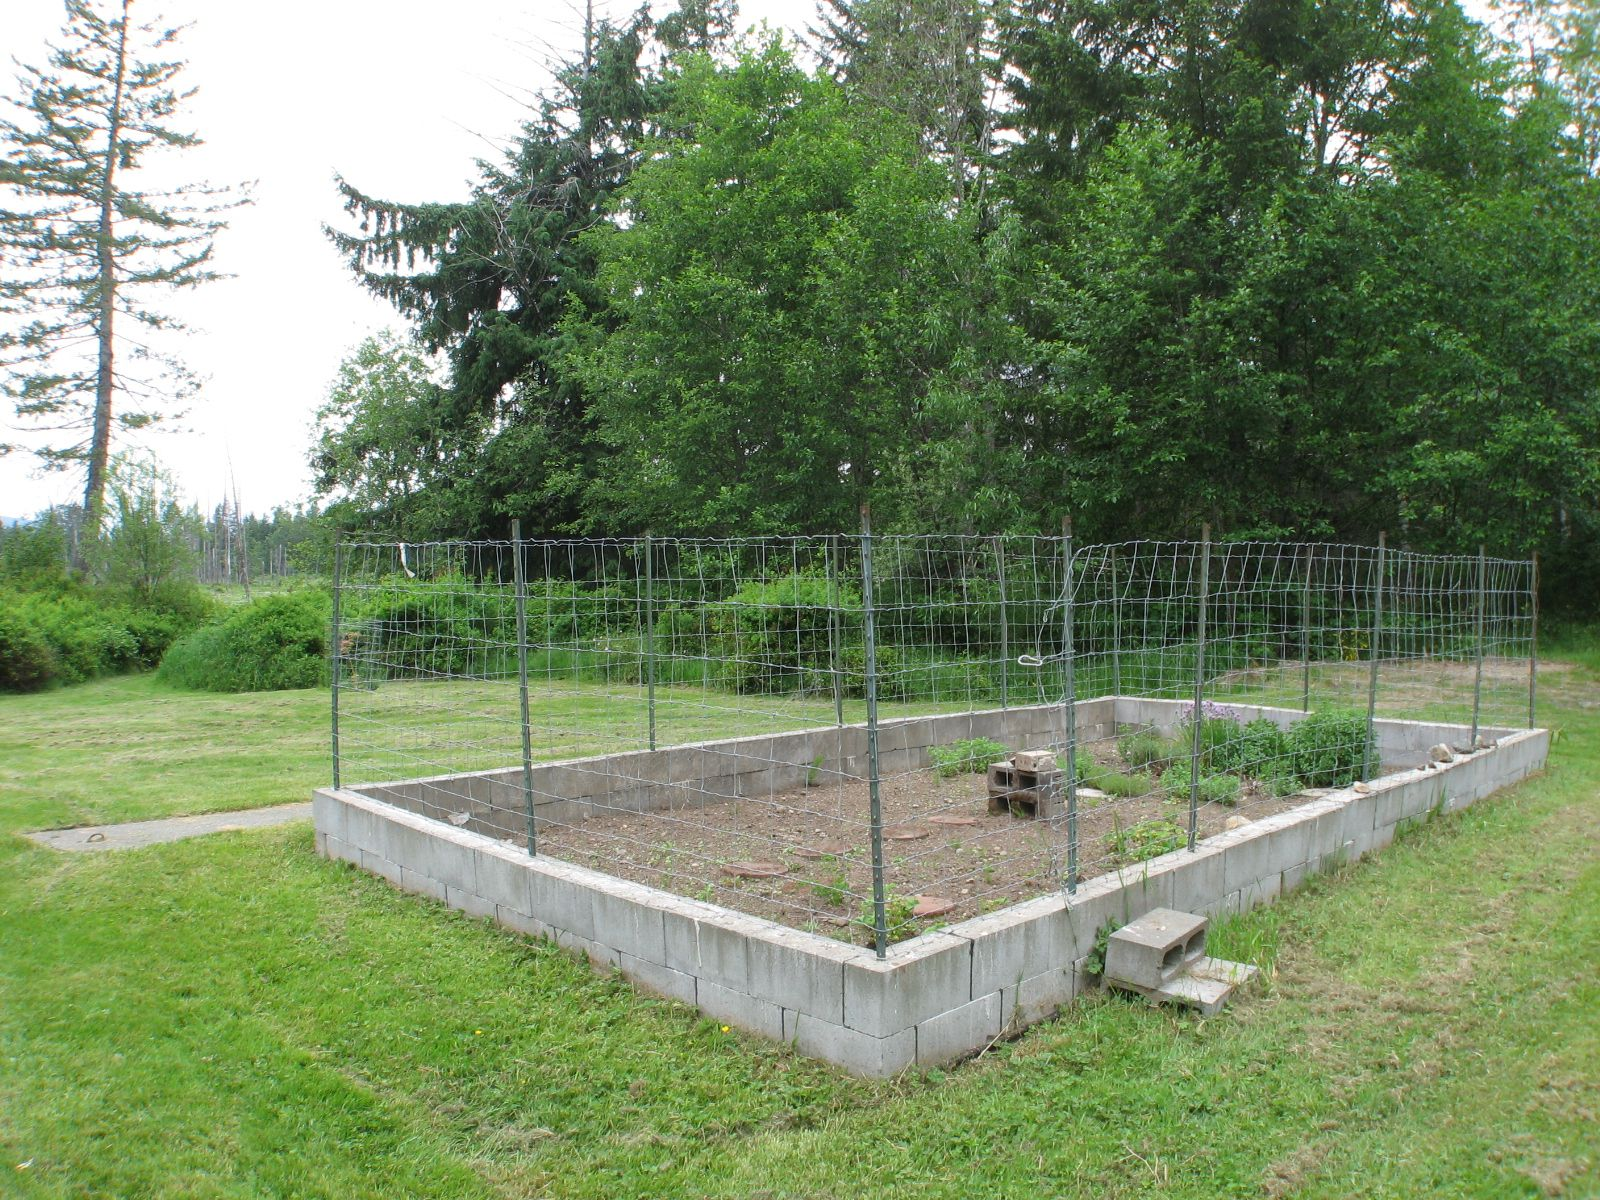 240 best deer proof garden images on pinterest deer vegetables garden and fence ideas - Deer Proof Vegetable Garden Ideas